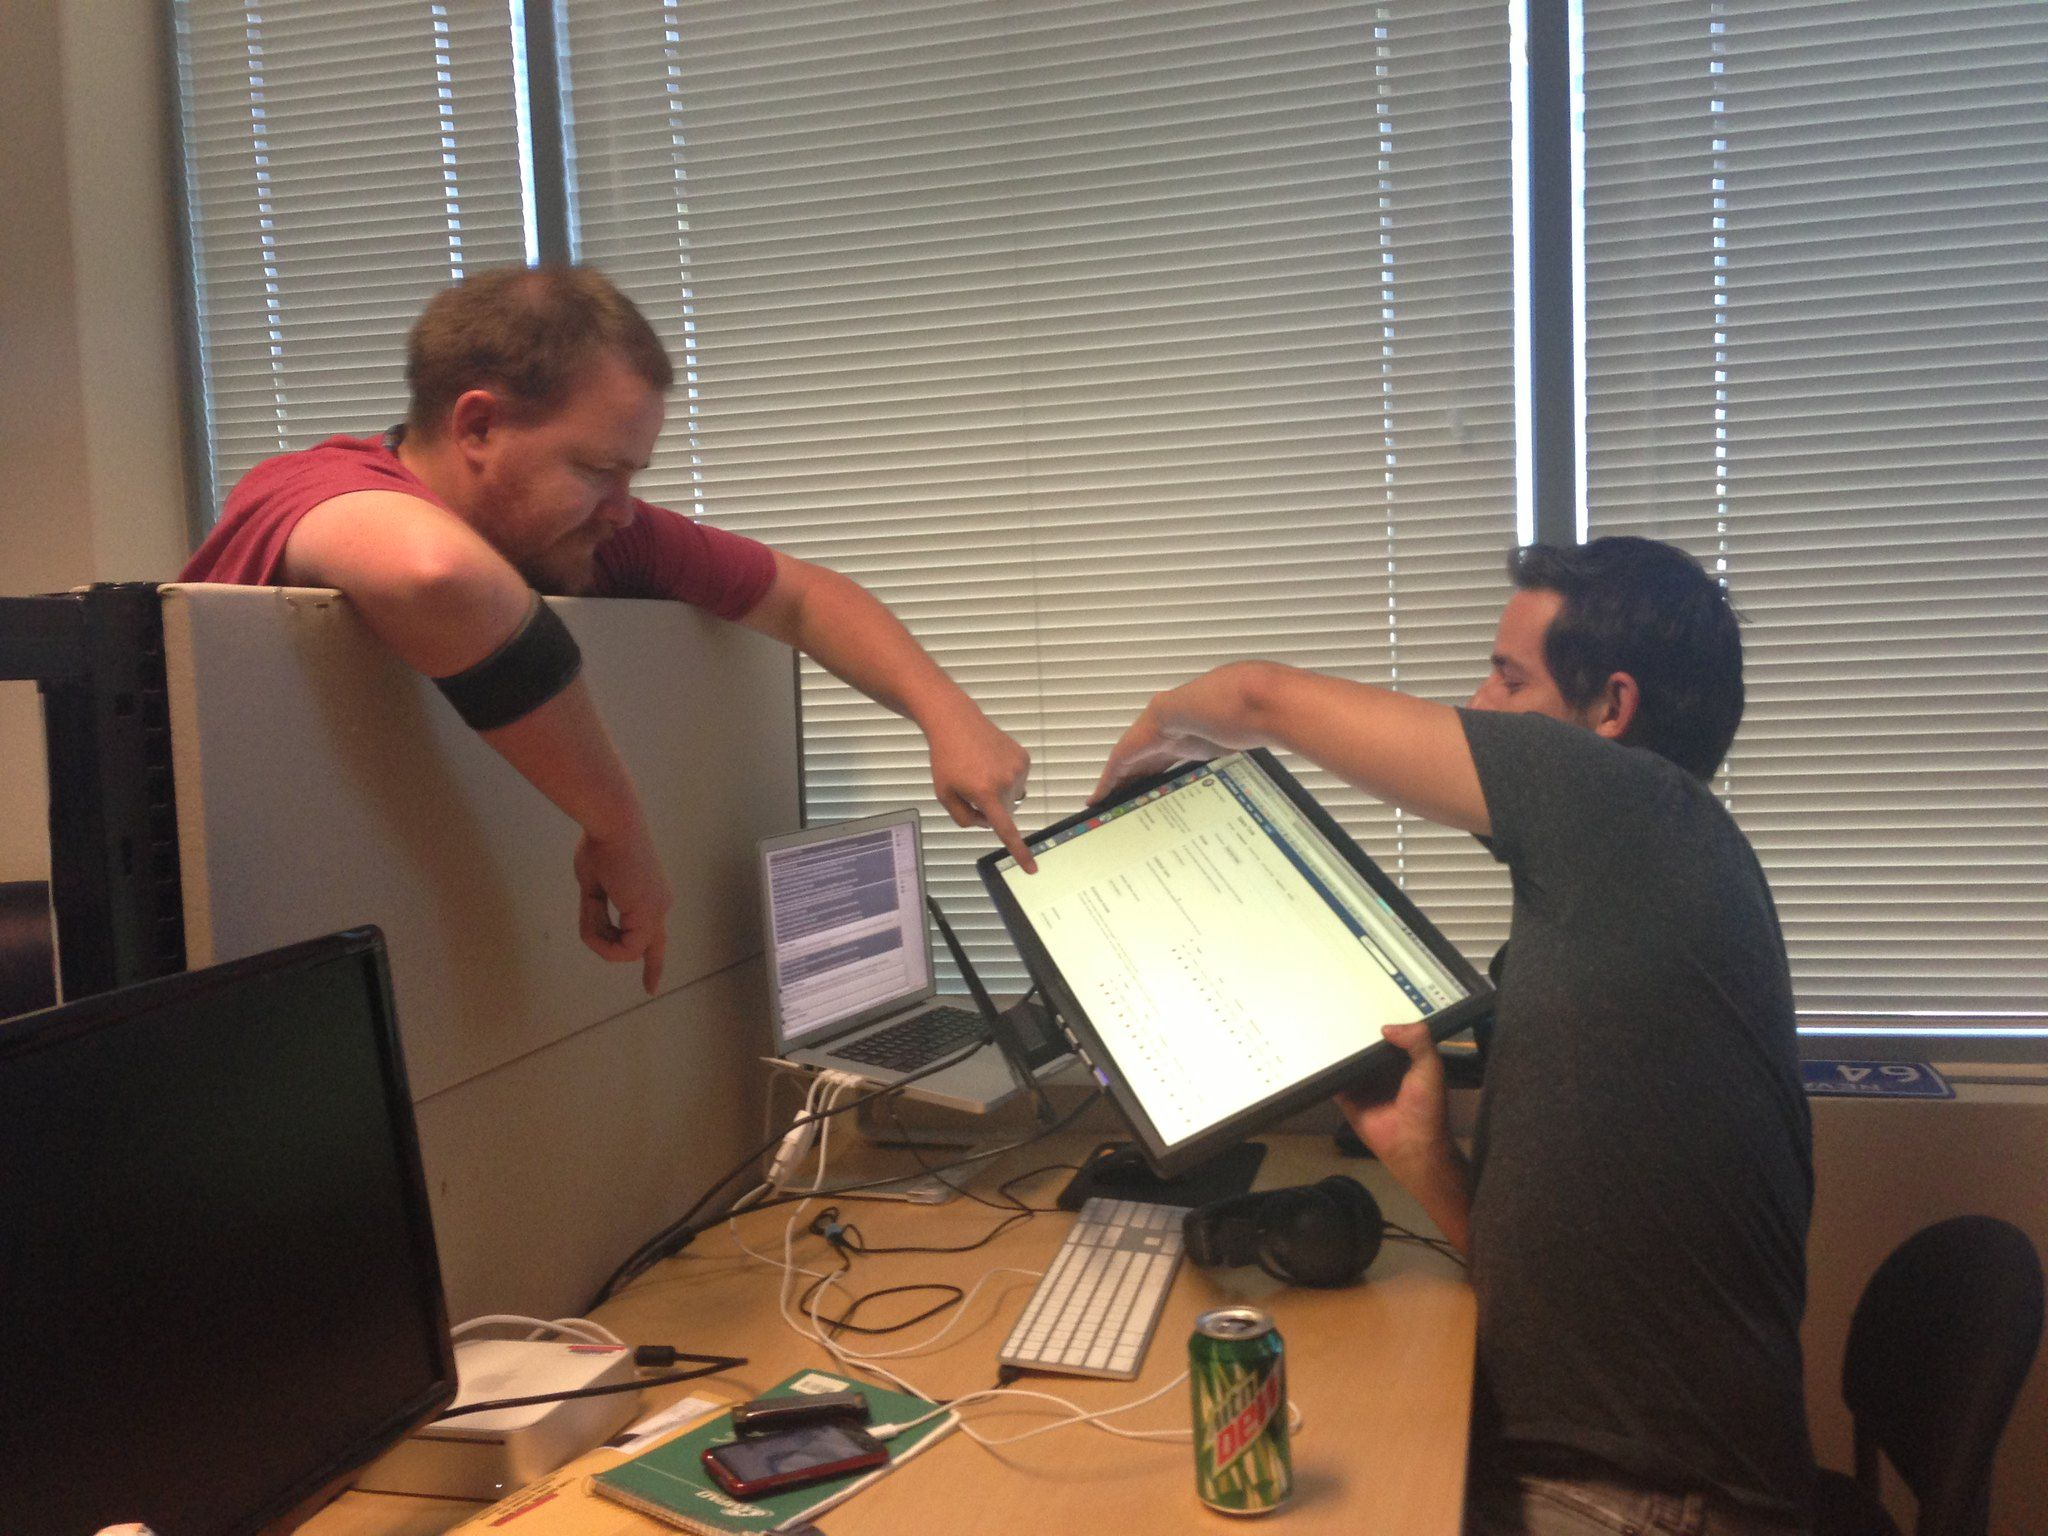 /pair-programming-and-code-reviews-can-work-sometimes-blw37b9 feature image